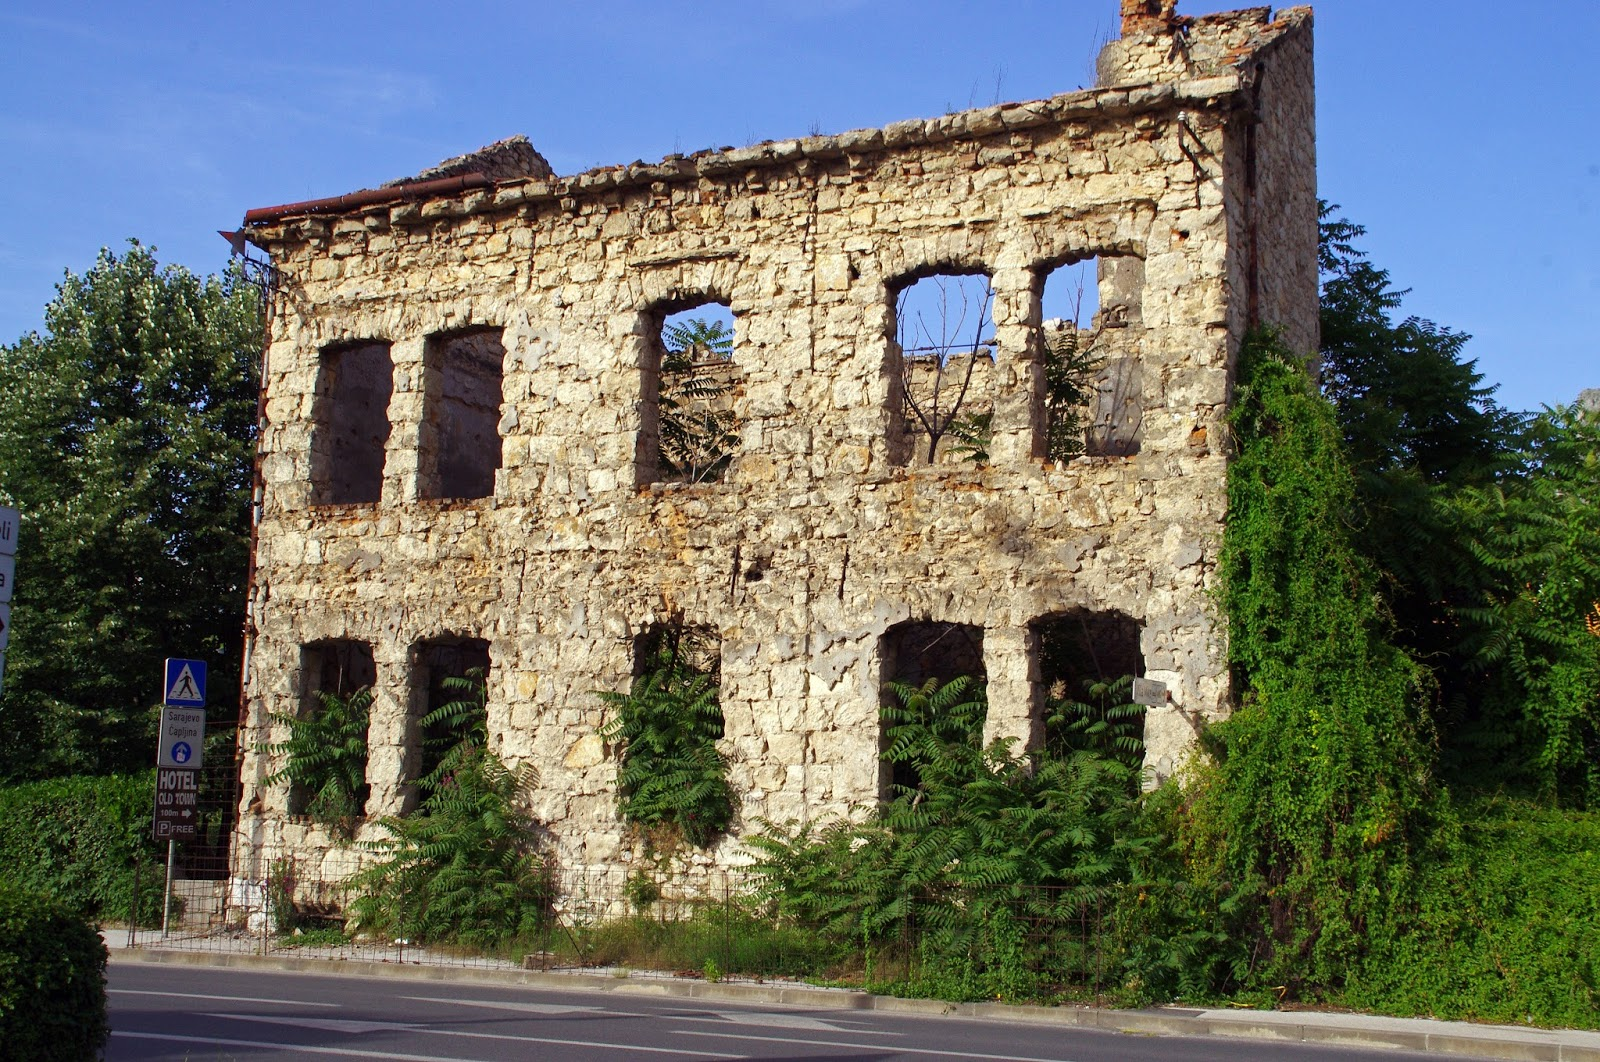 Bullet damaged buildings in Mostar